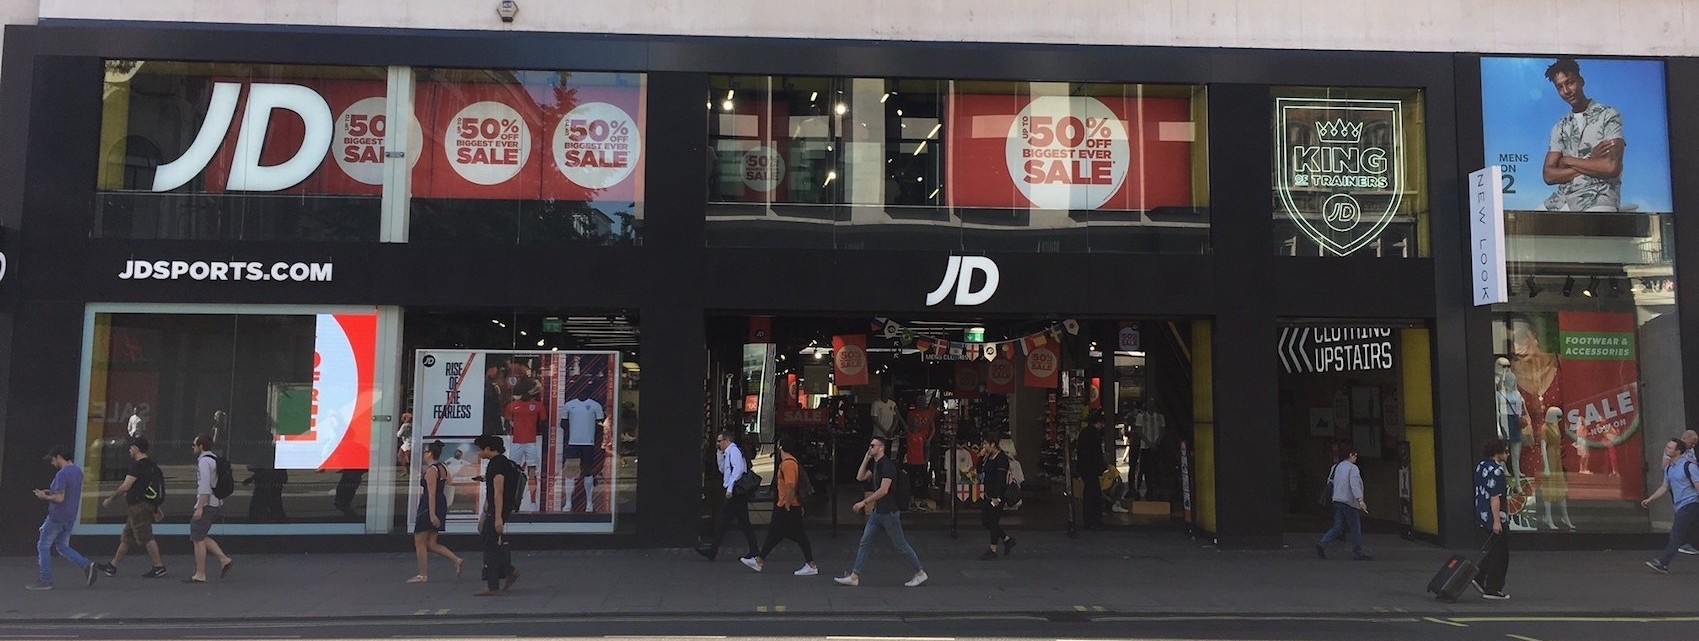 How does Technology Enhance the In-Store Customer Experience at JD Sports?